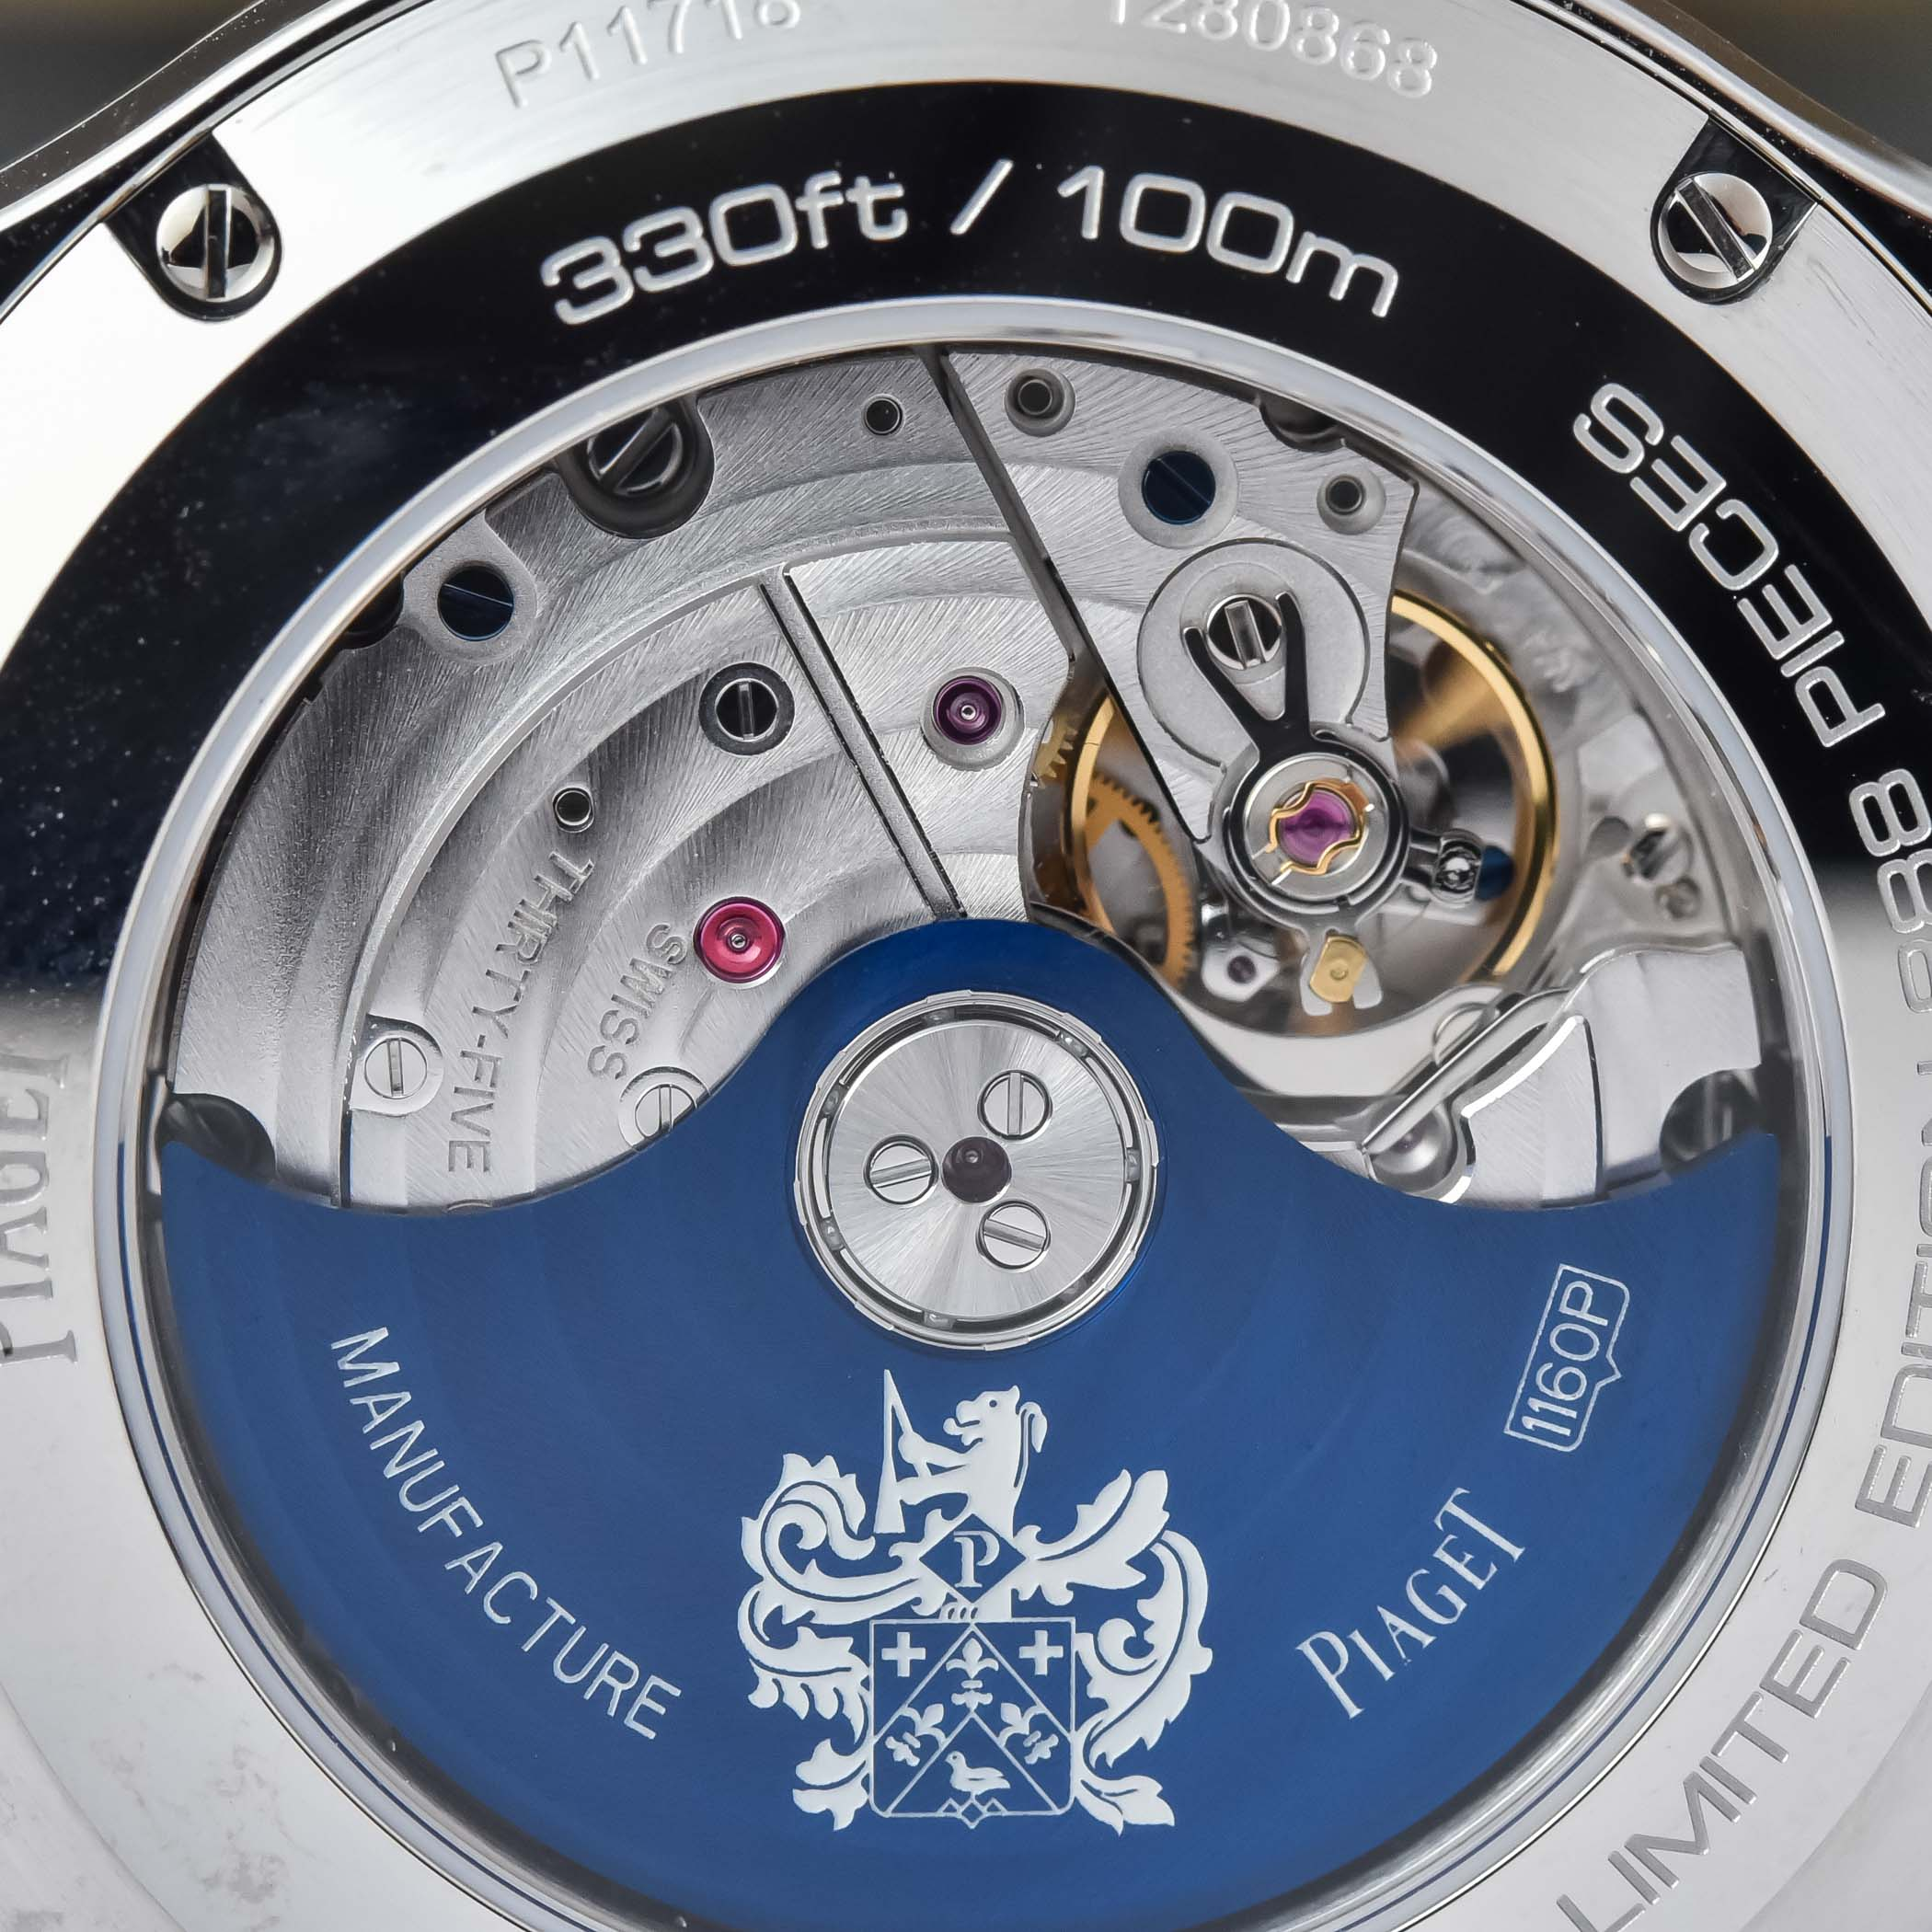 Piaget-Polo-Blue-Panda-Automatic-Chronograph-42mm-Rubber-Strap-G0A46013-hands-on-8.jpg